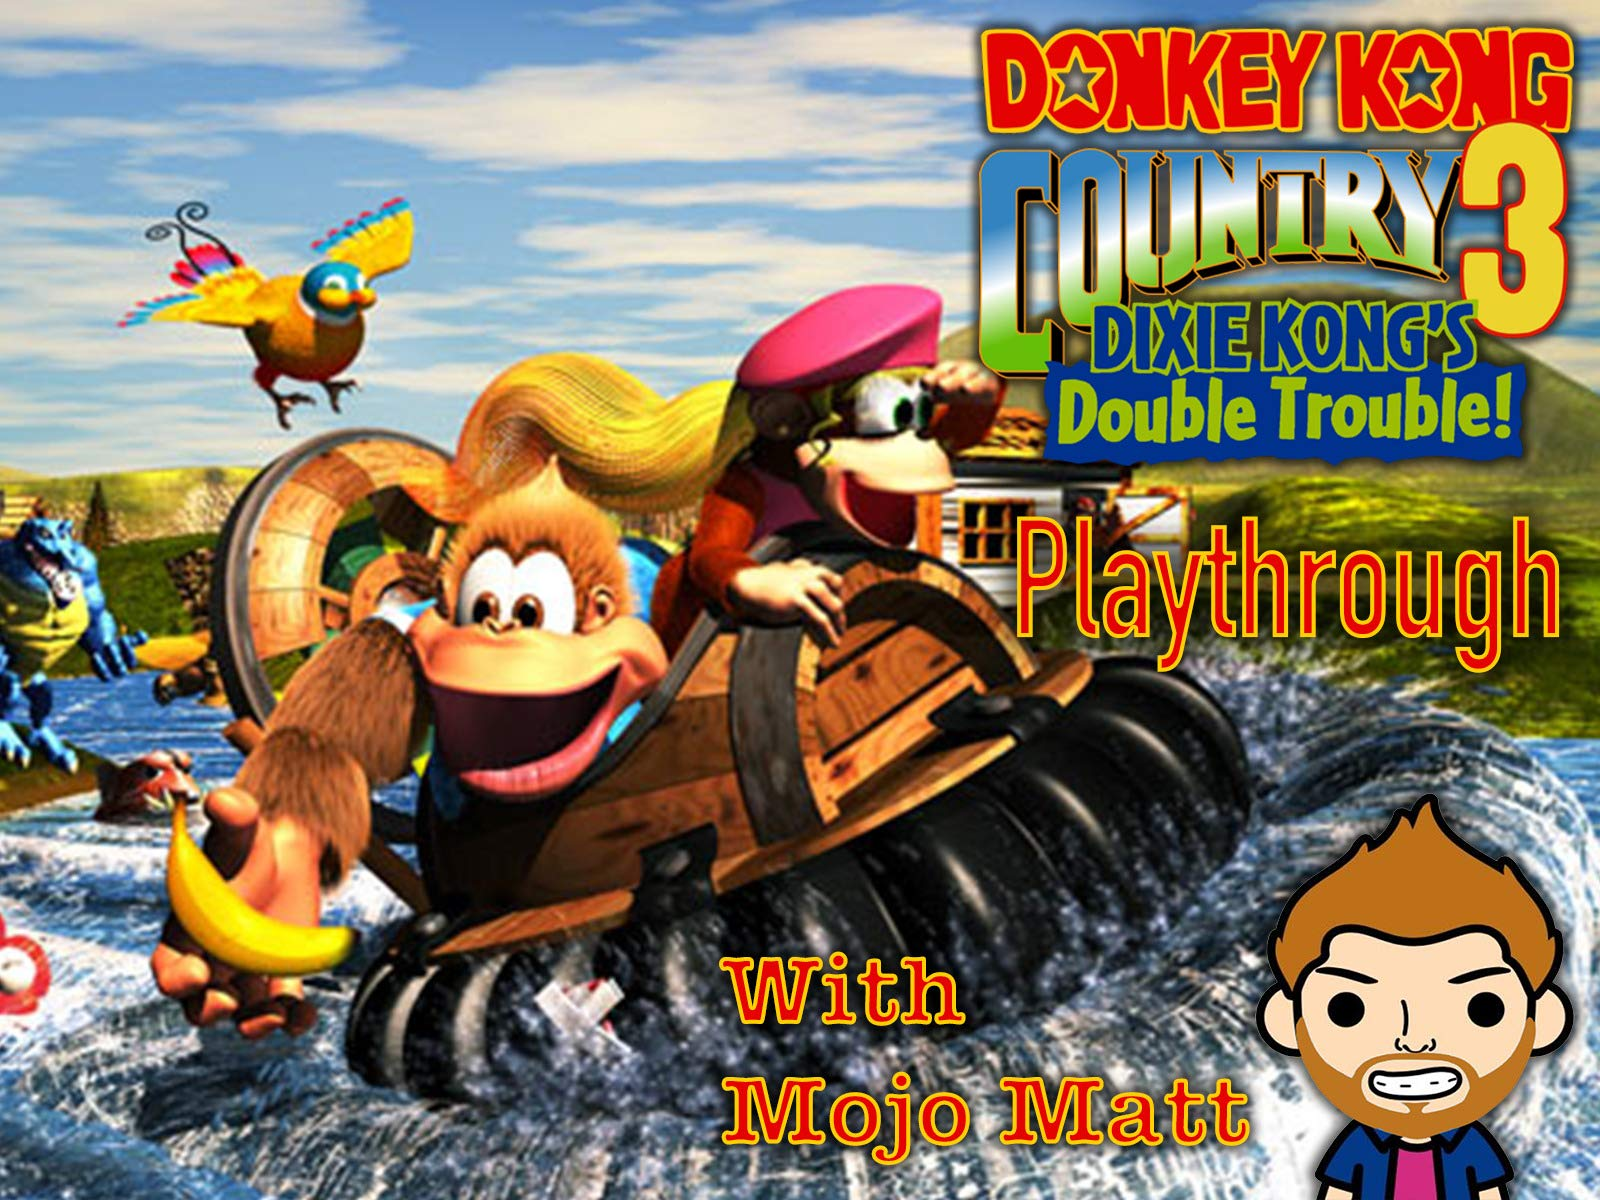 Donkey Kong Country 3 Dixie Kong's Double Trouble Playthrough With Mojo Matt - Season 1